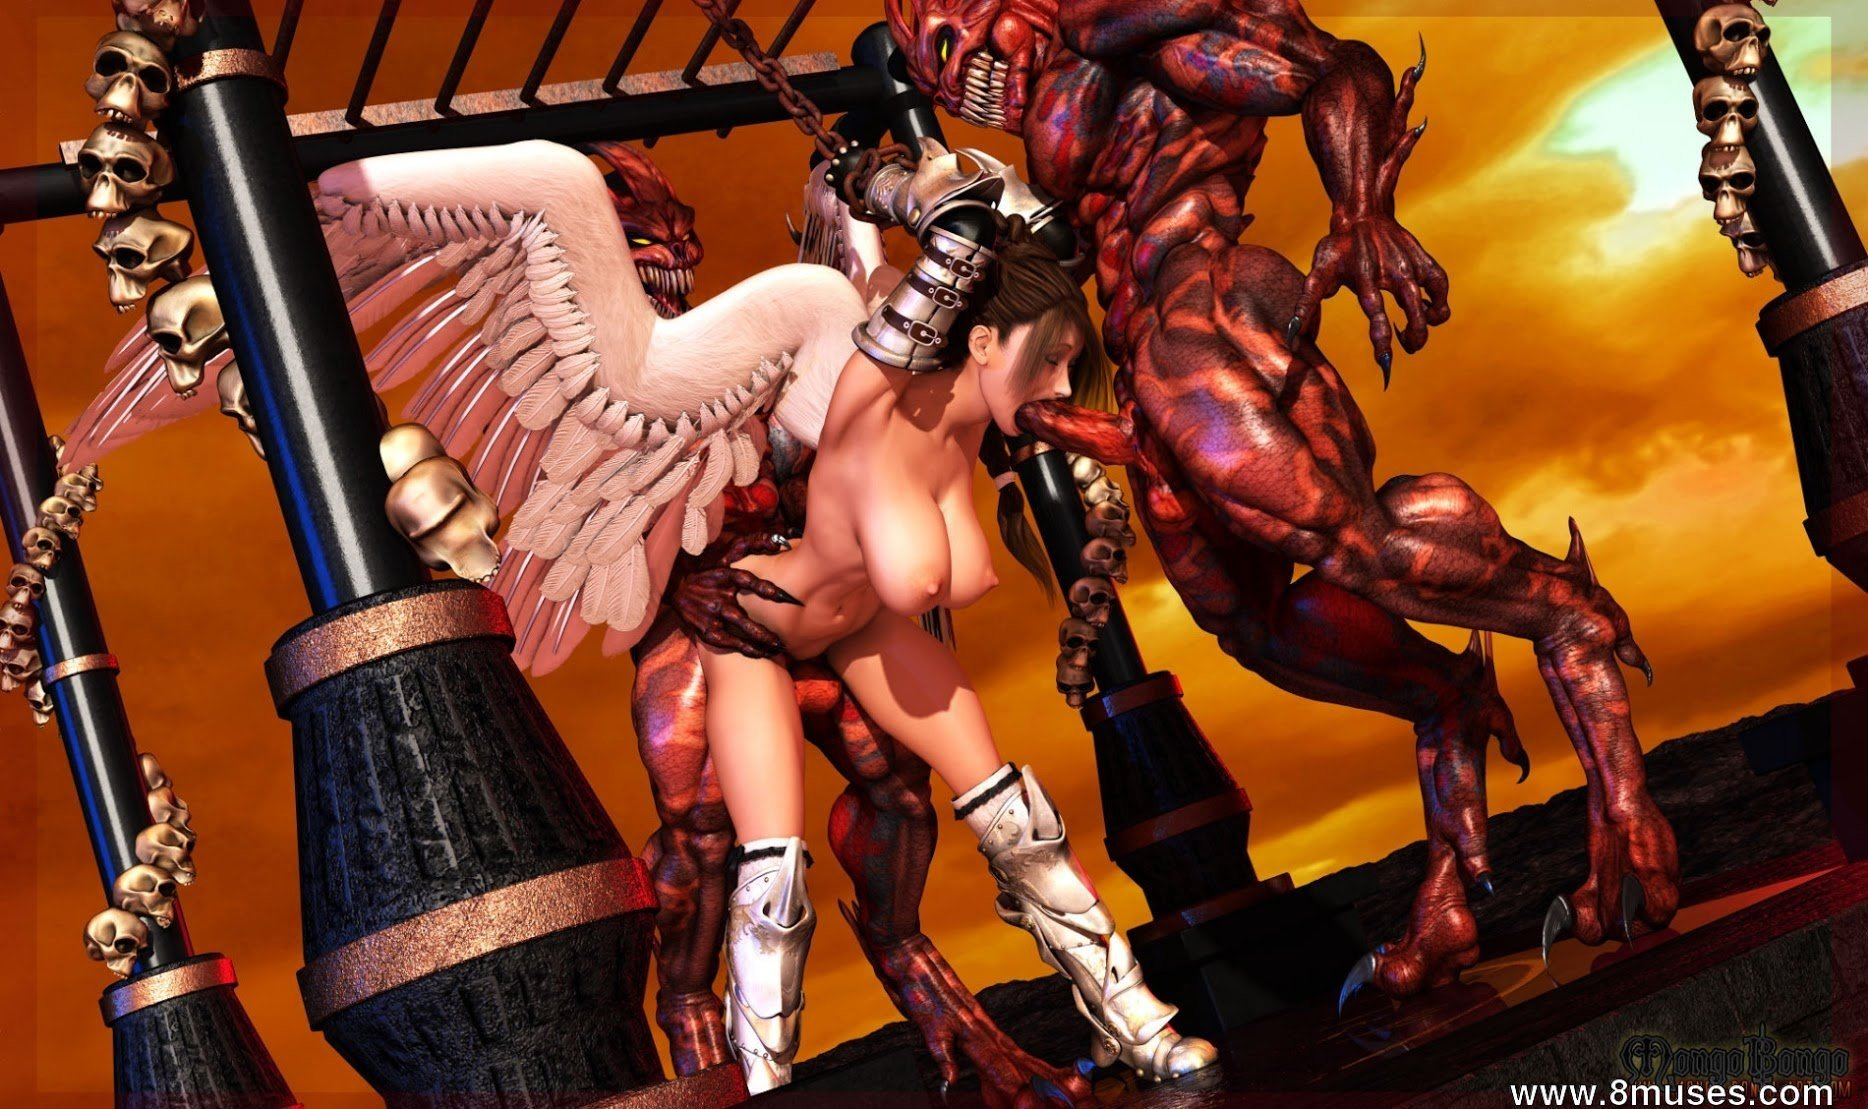 angel-has-sex-with-demon-pictures-nude-comic